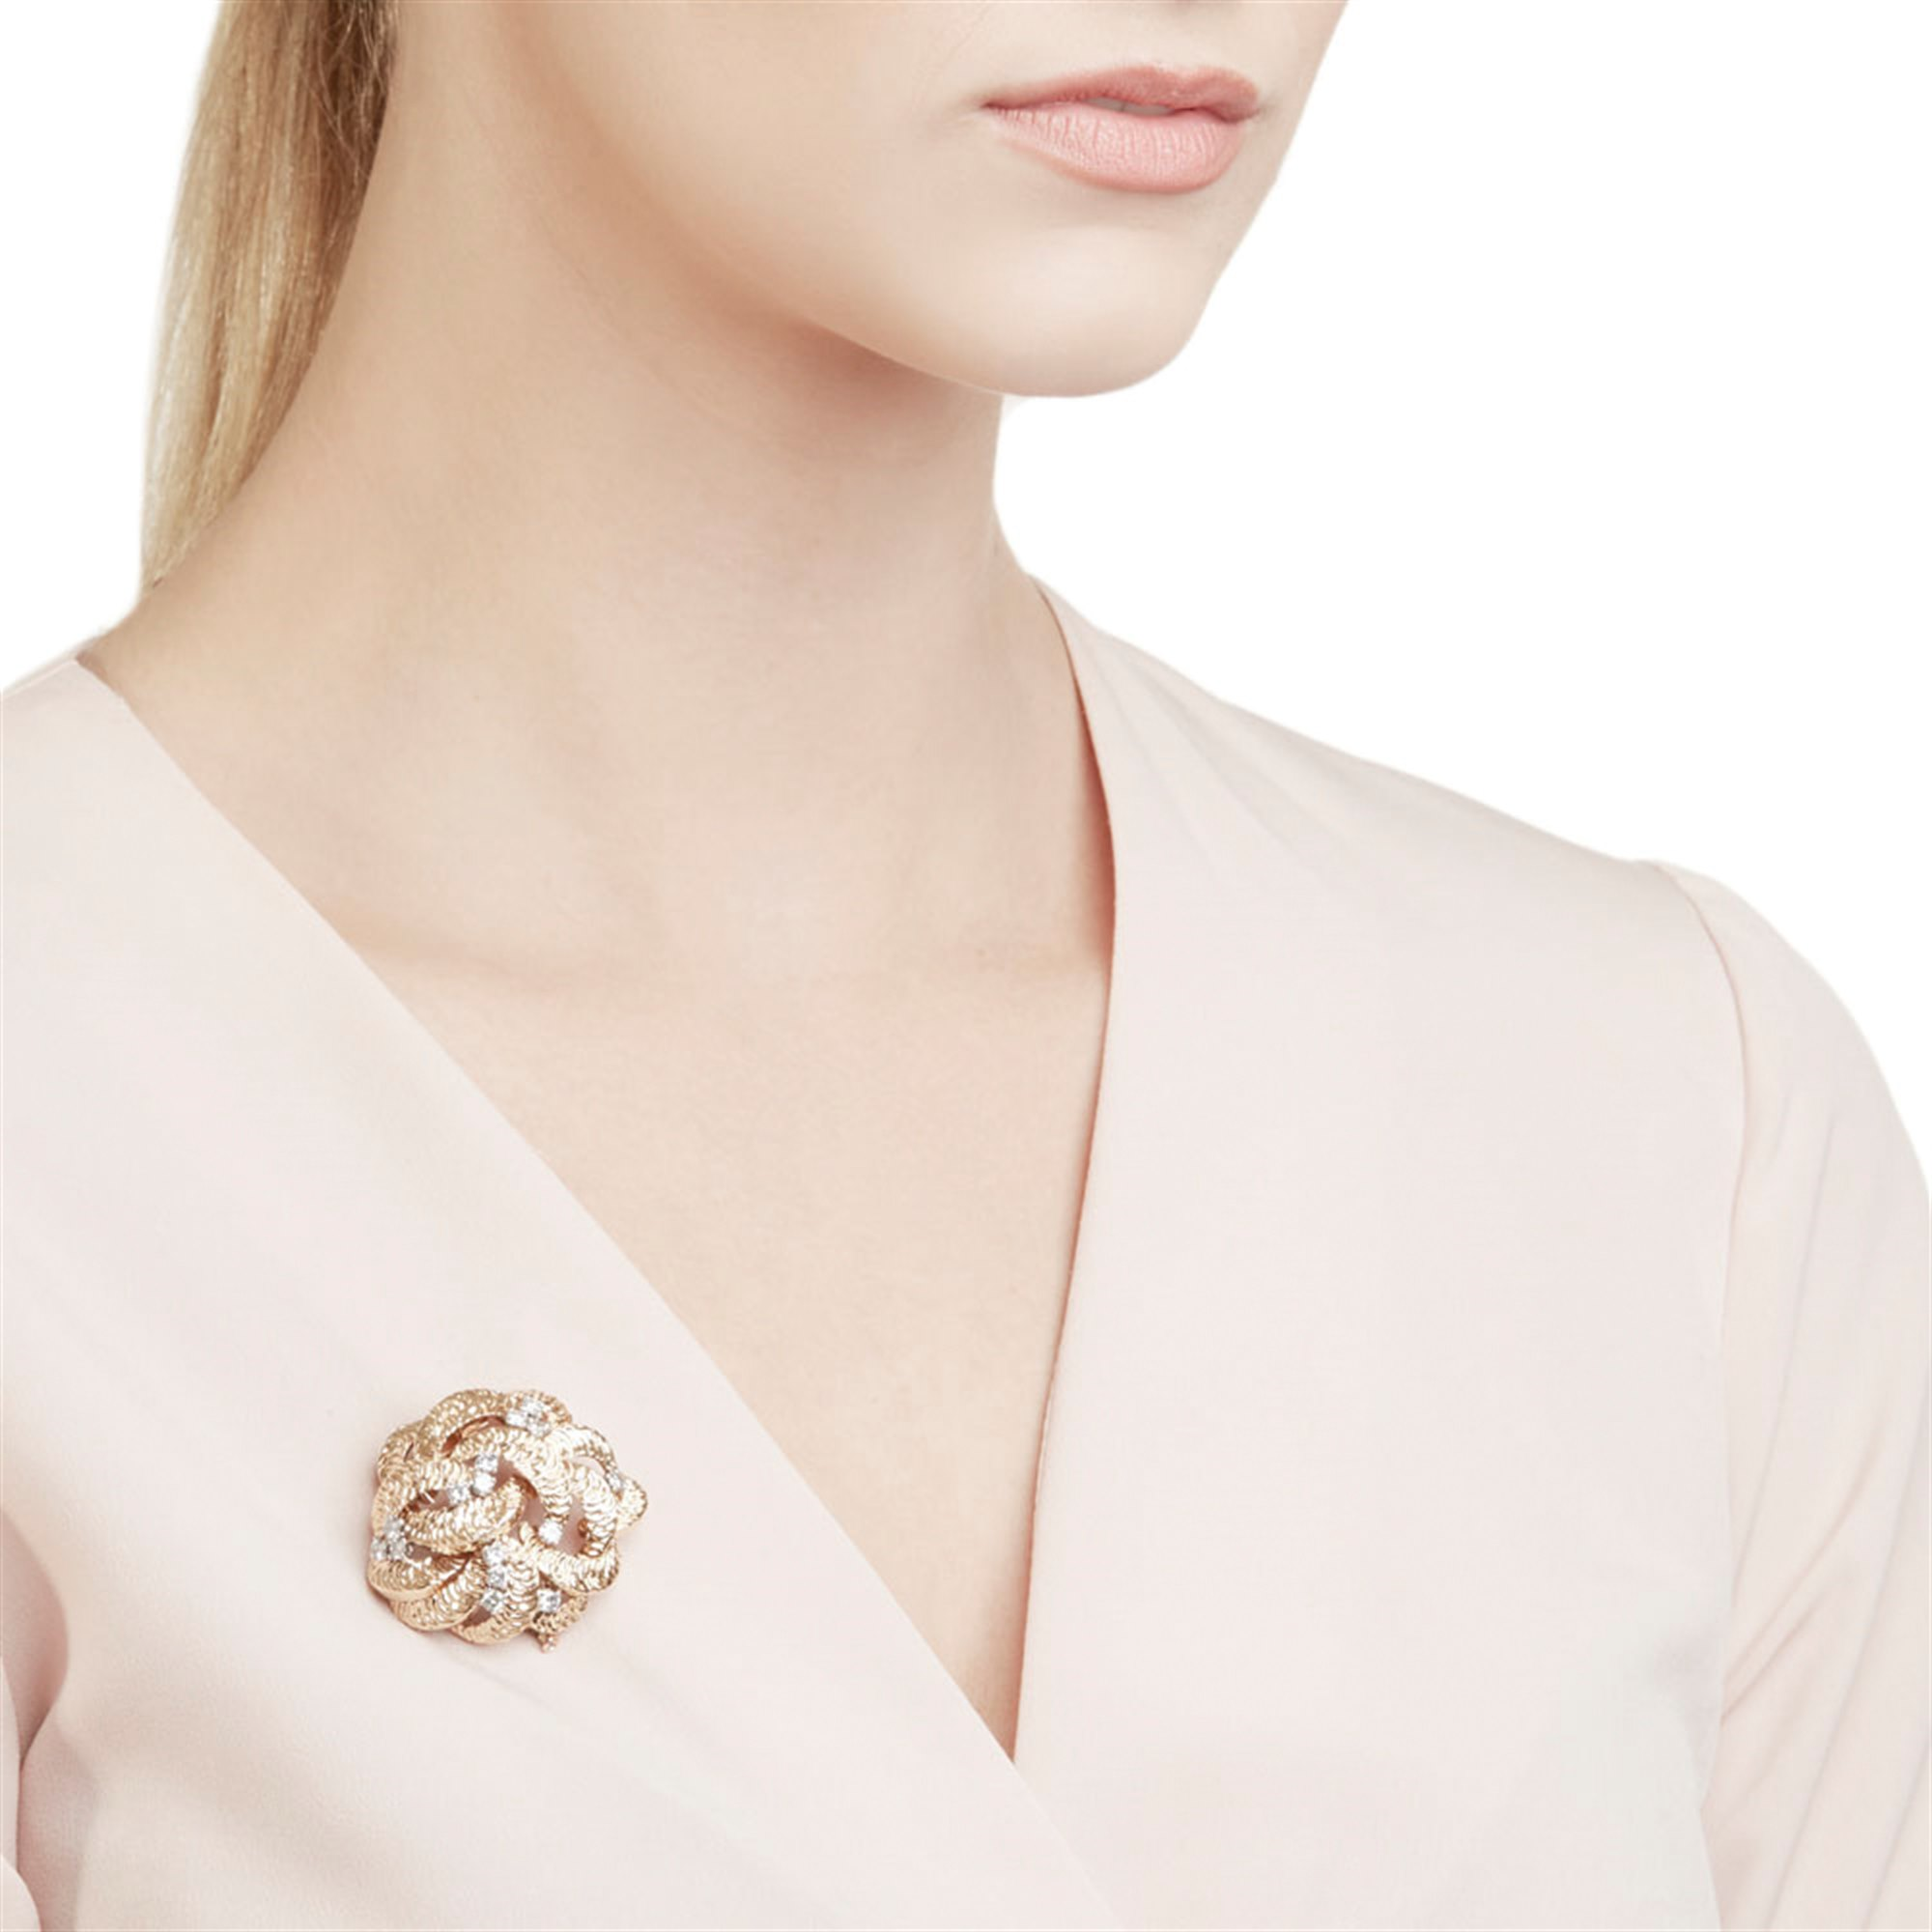 Boucheron 18k Yellow Gold Diamond Vintage Flower Design Brooch